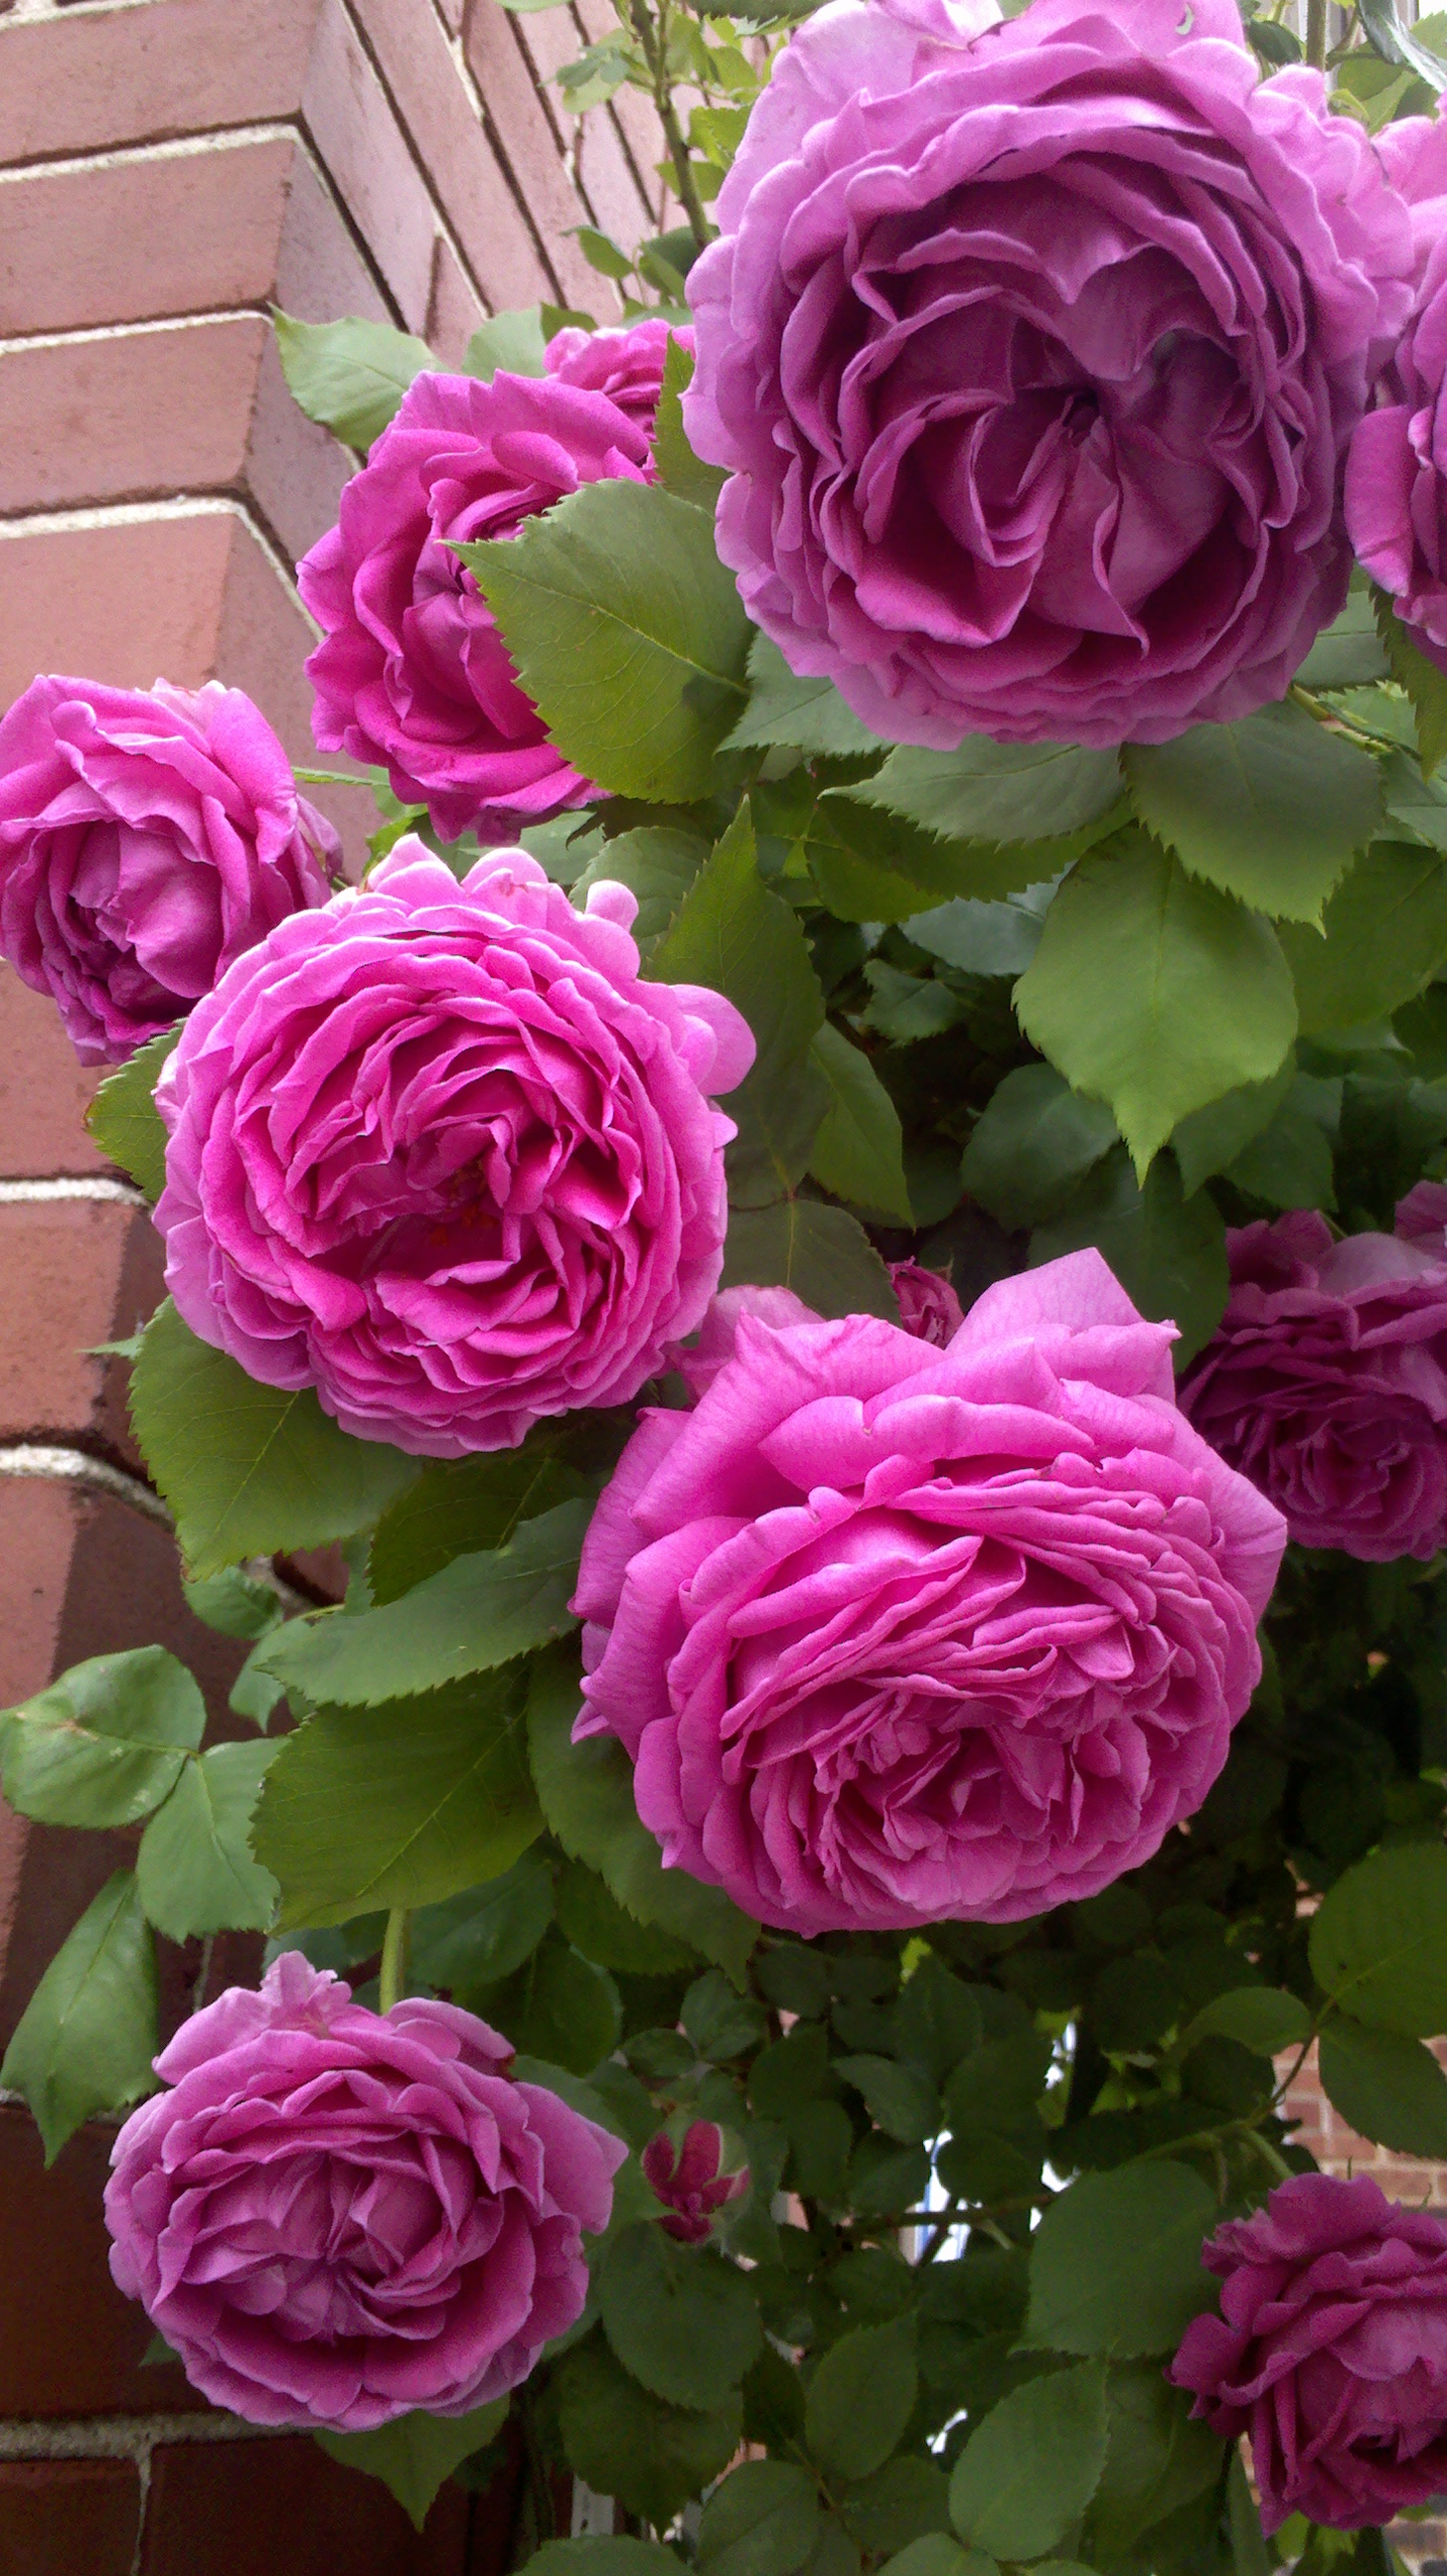 Roses In Garden: The Rose Garden